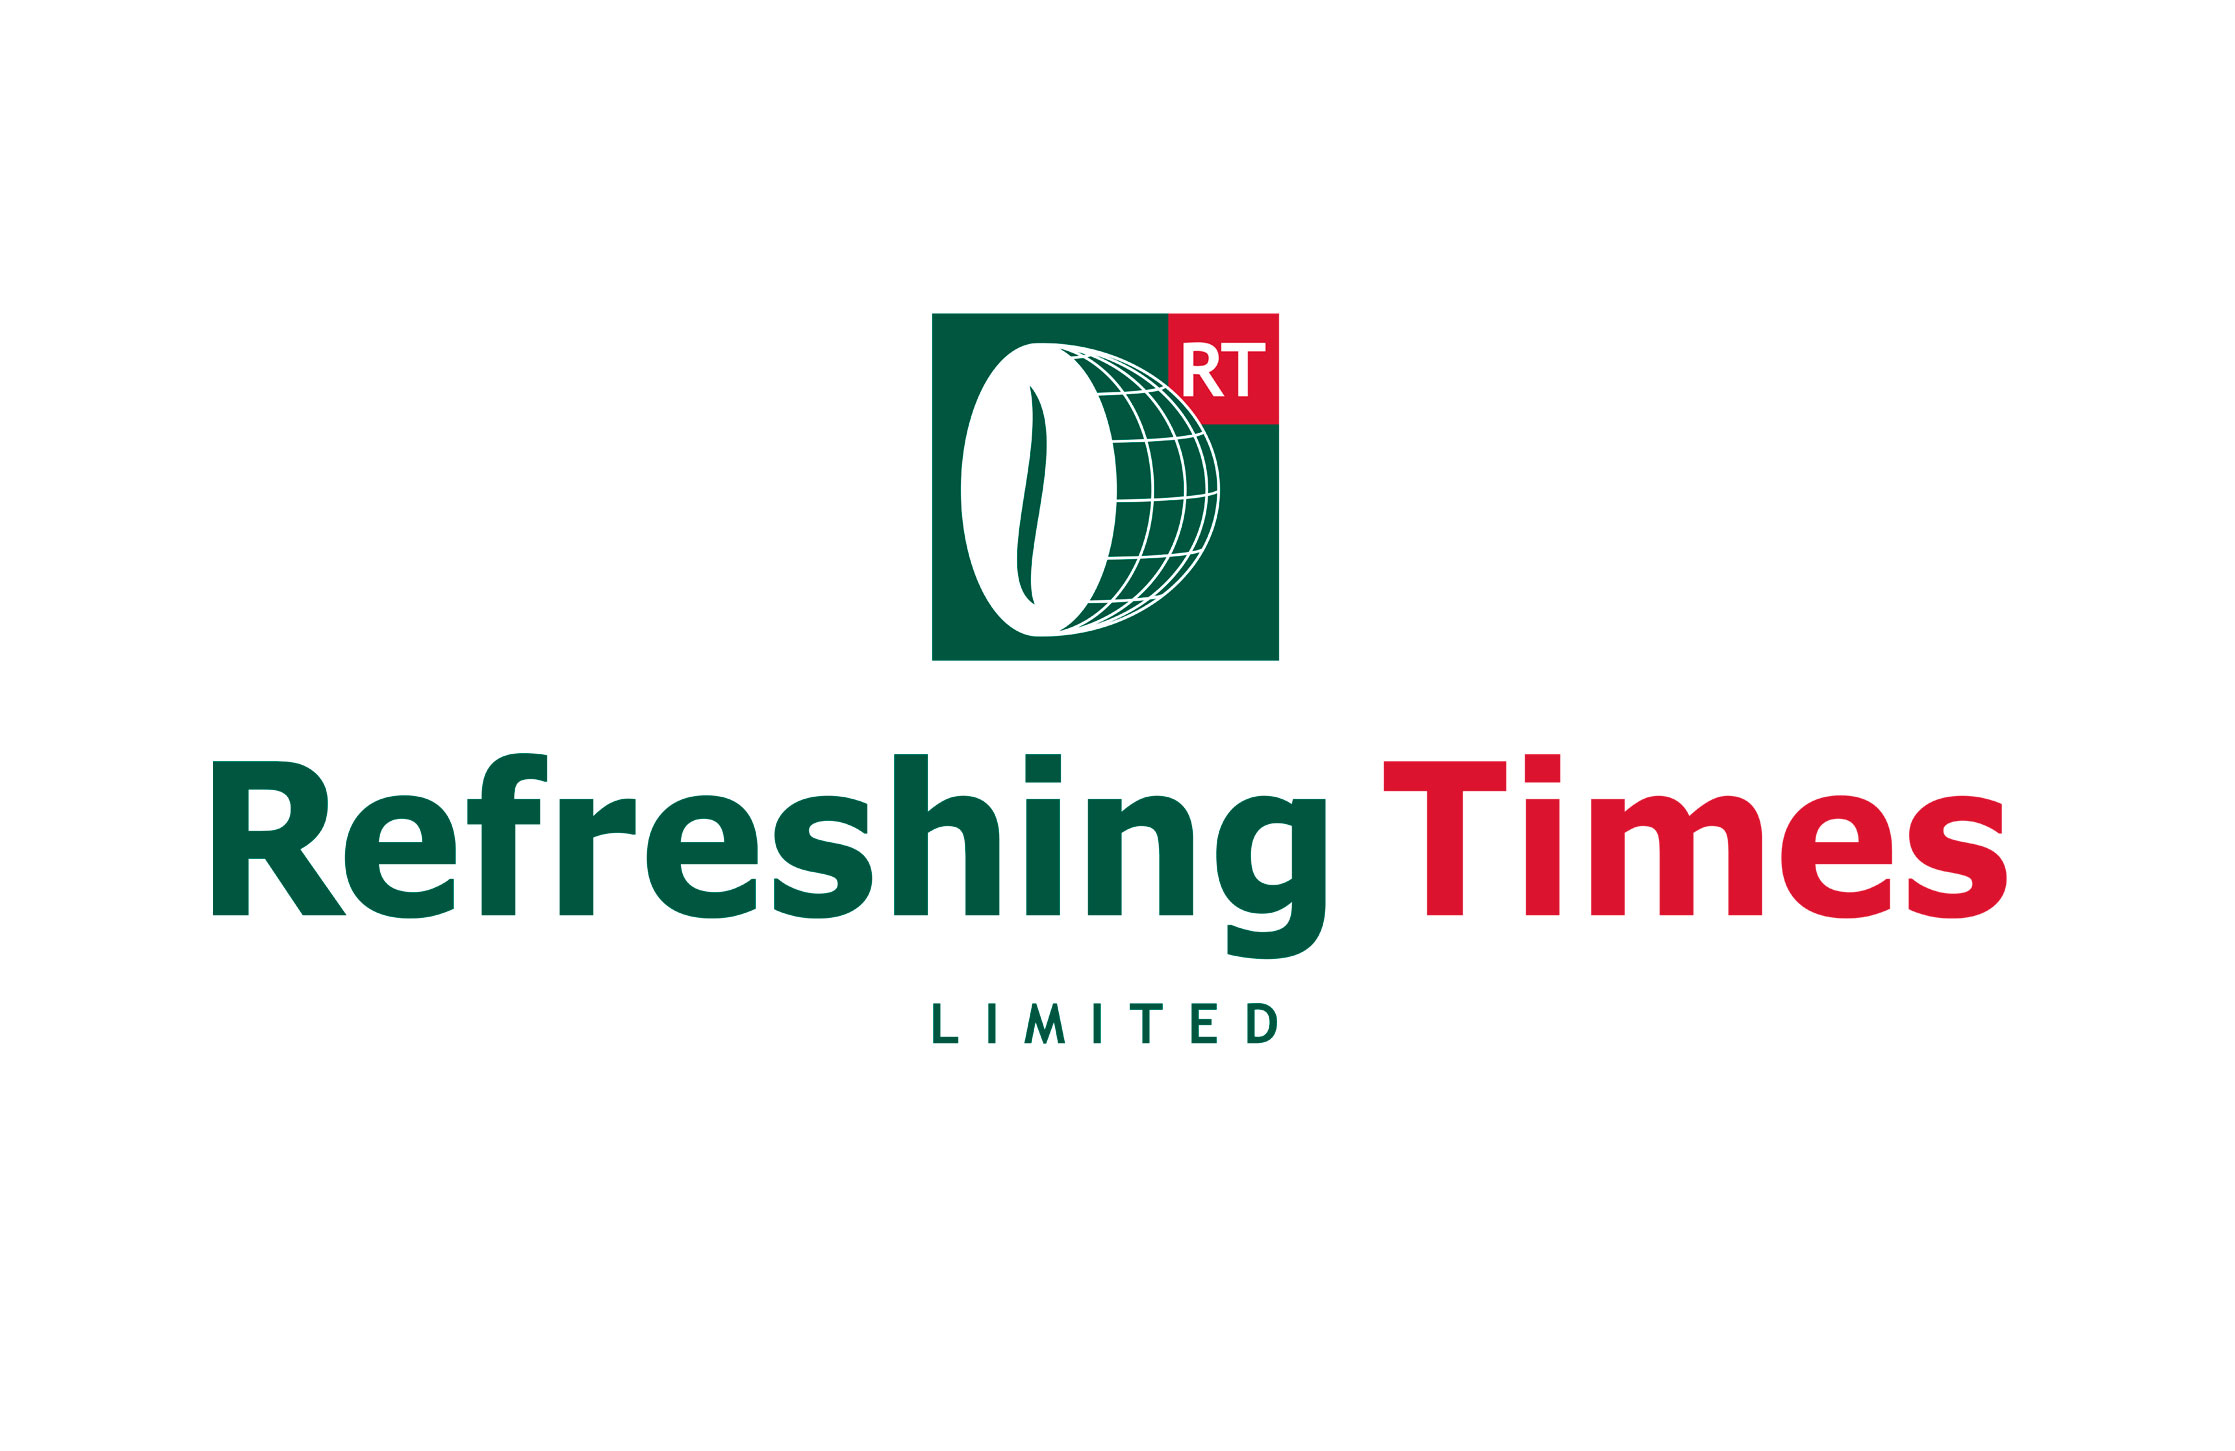 Design and artwork of corporate logo for Refreshing Times Ltd  for print and web application